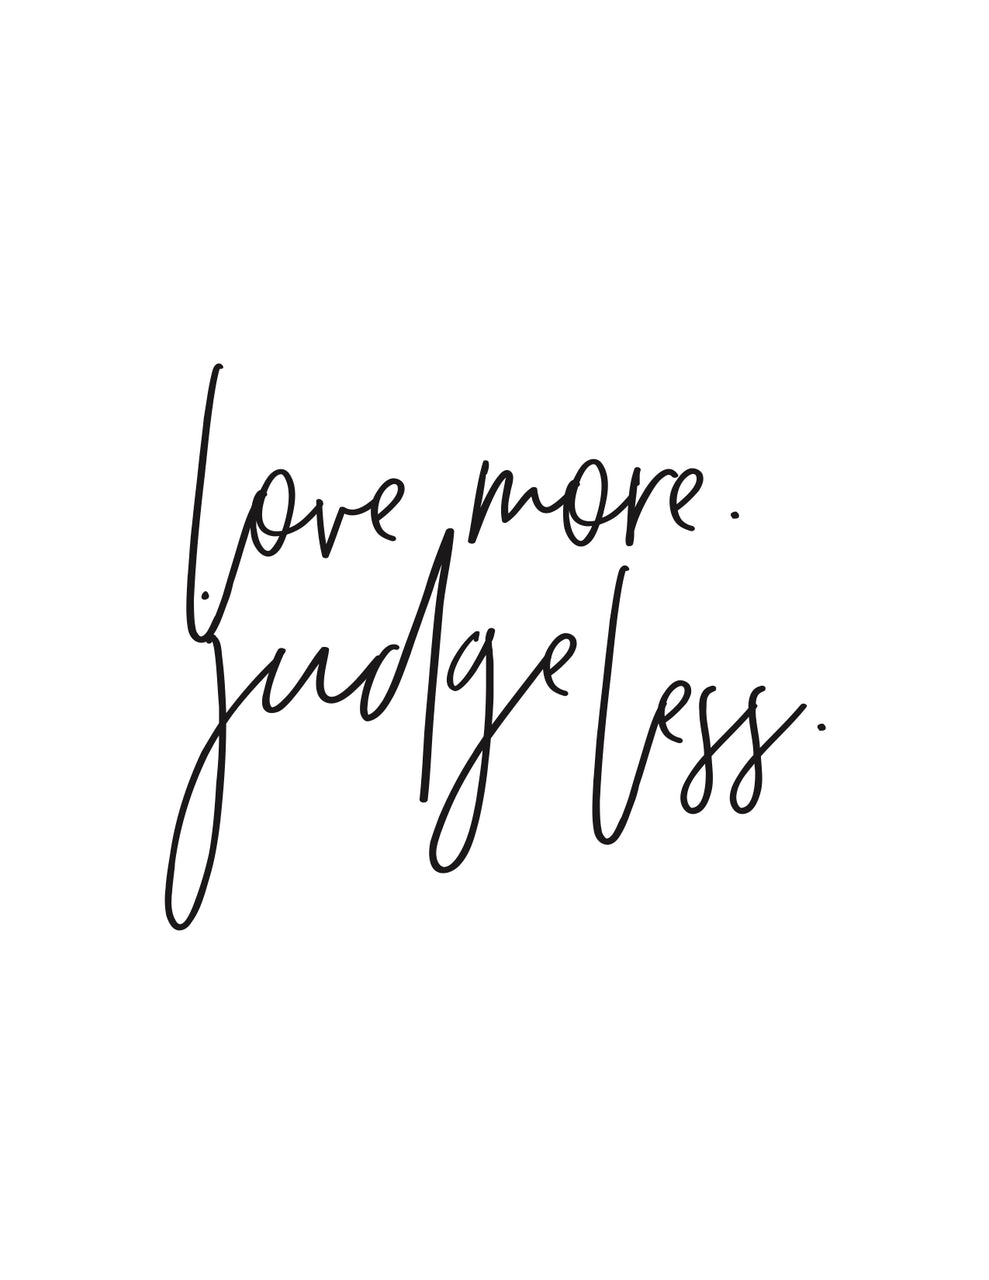 Love More Judge Less Printable.